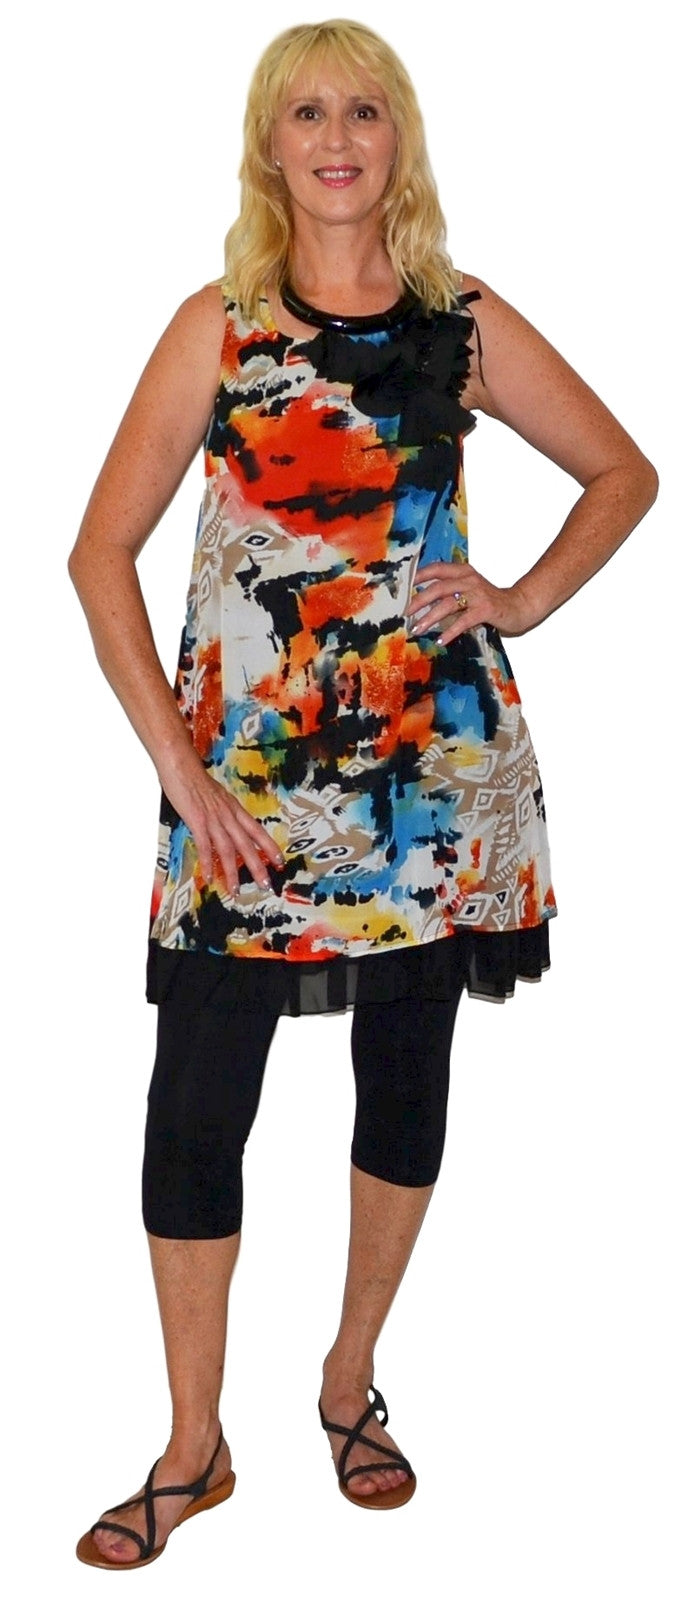 Pollys Flower Tunic - at I Love Tunics @ www.ilovetunics.com = Number One! Tunics Destination